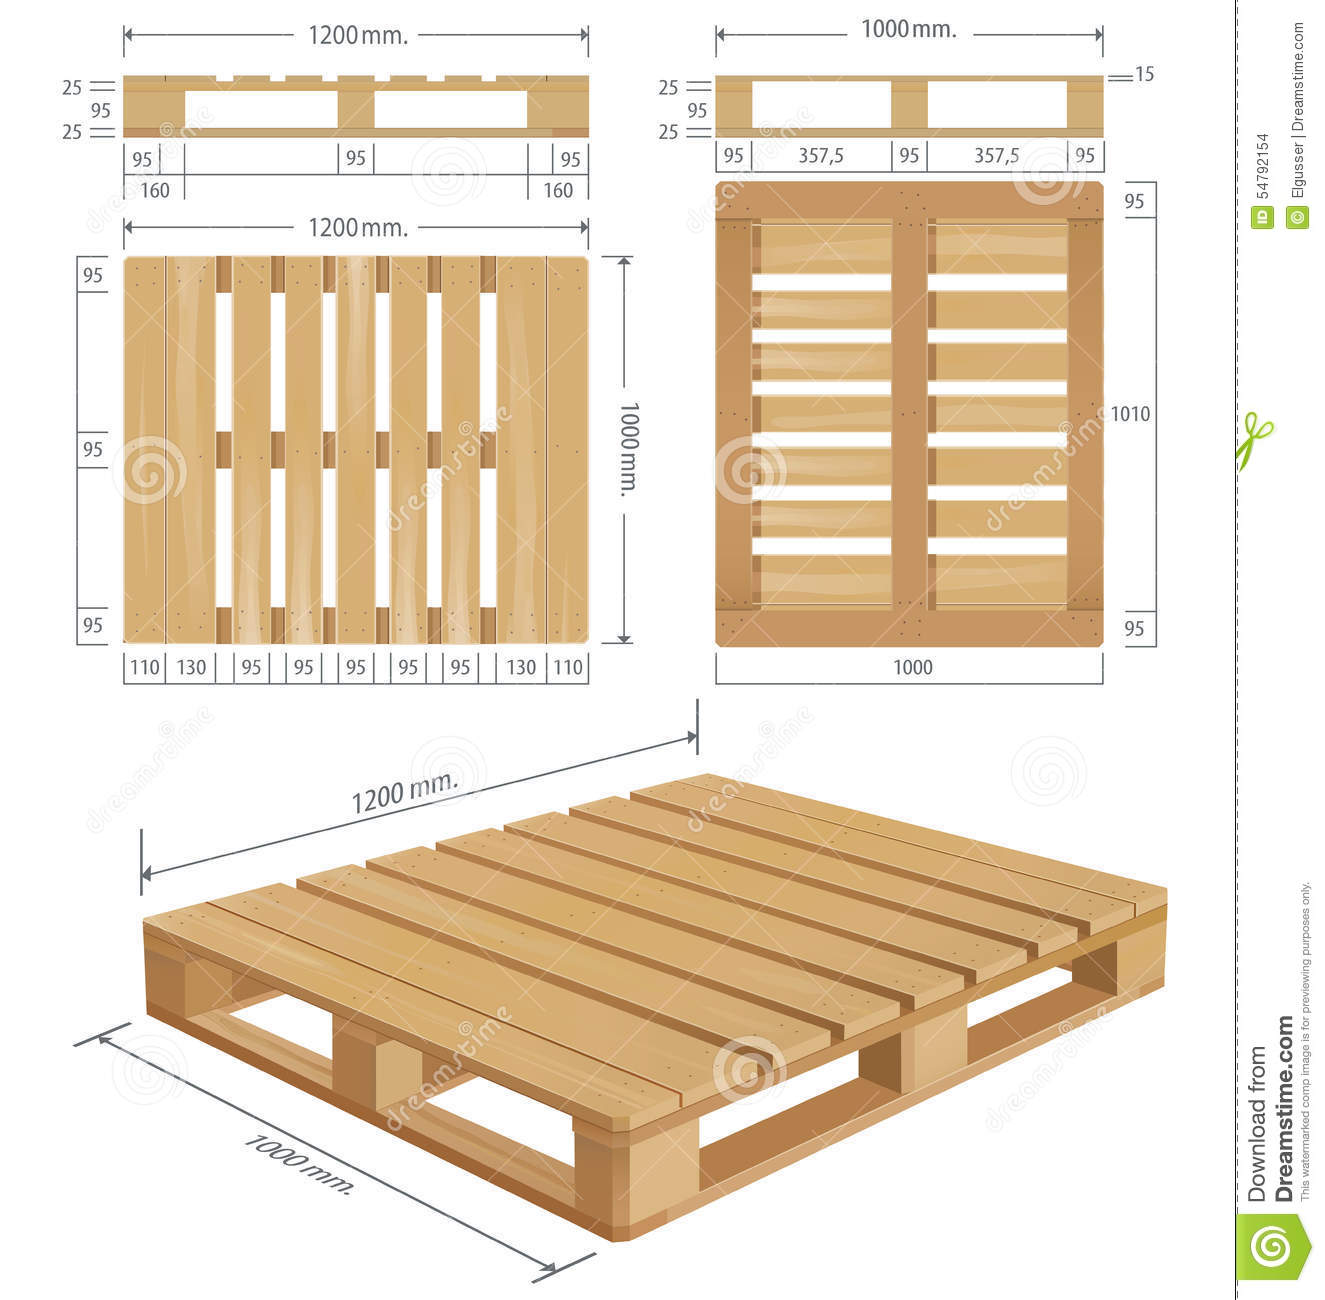 American Standard Pallet Views Stock Illustration Image 54792154